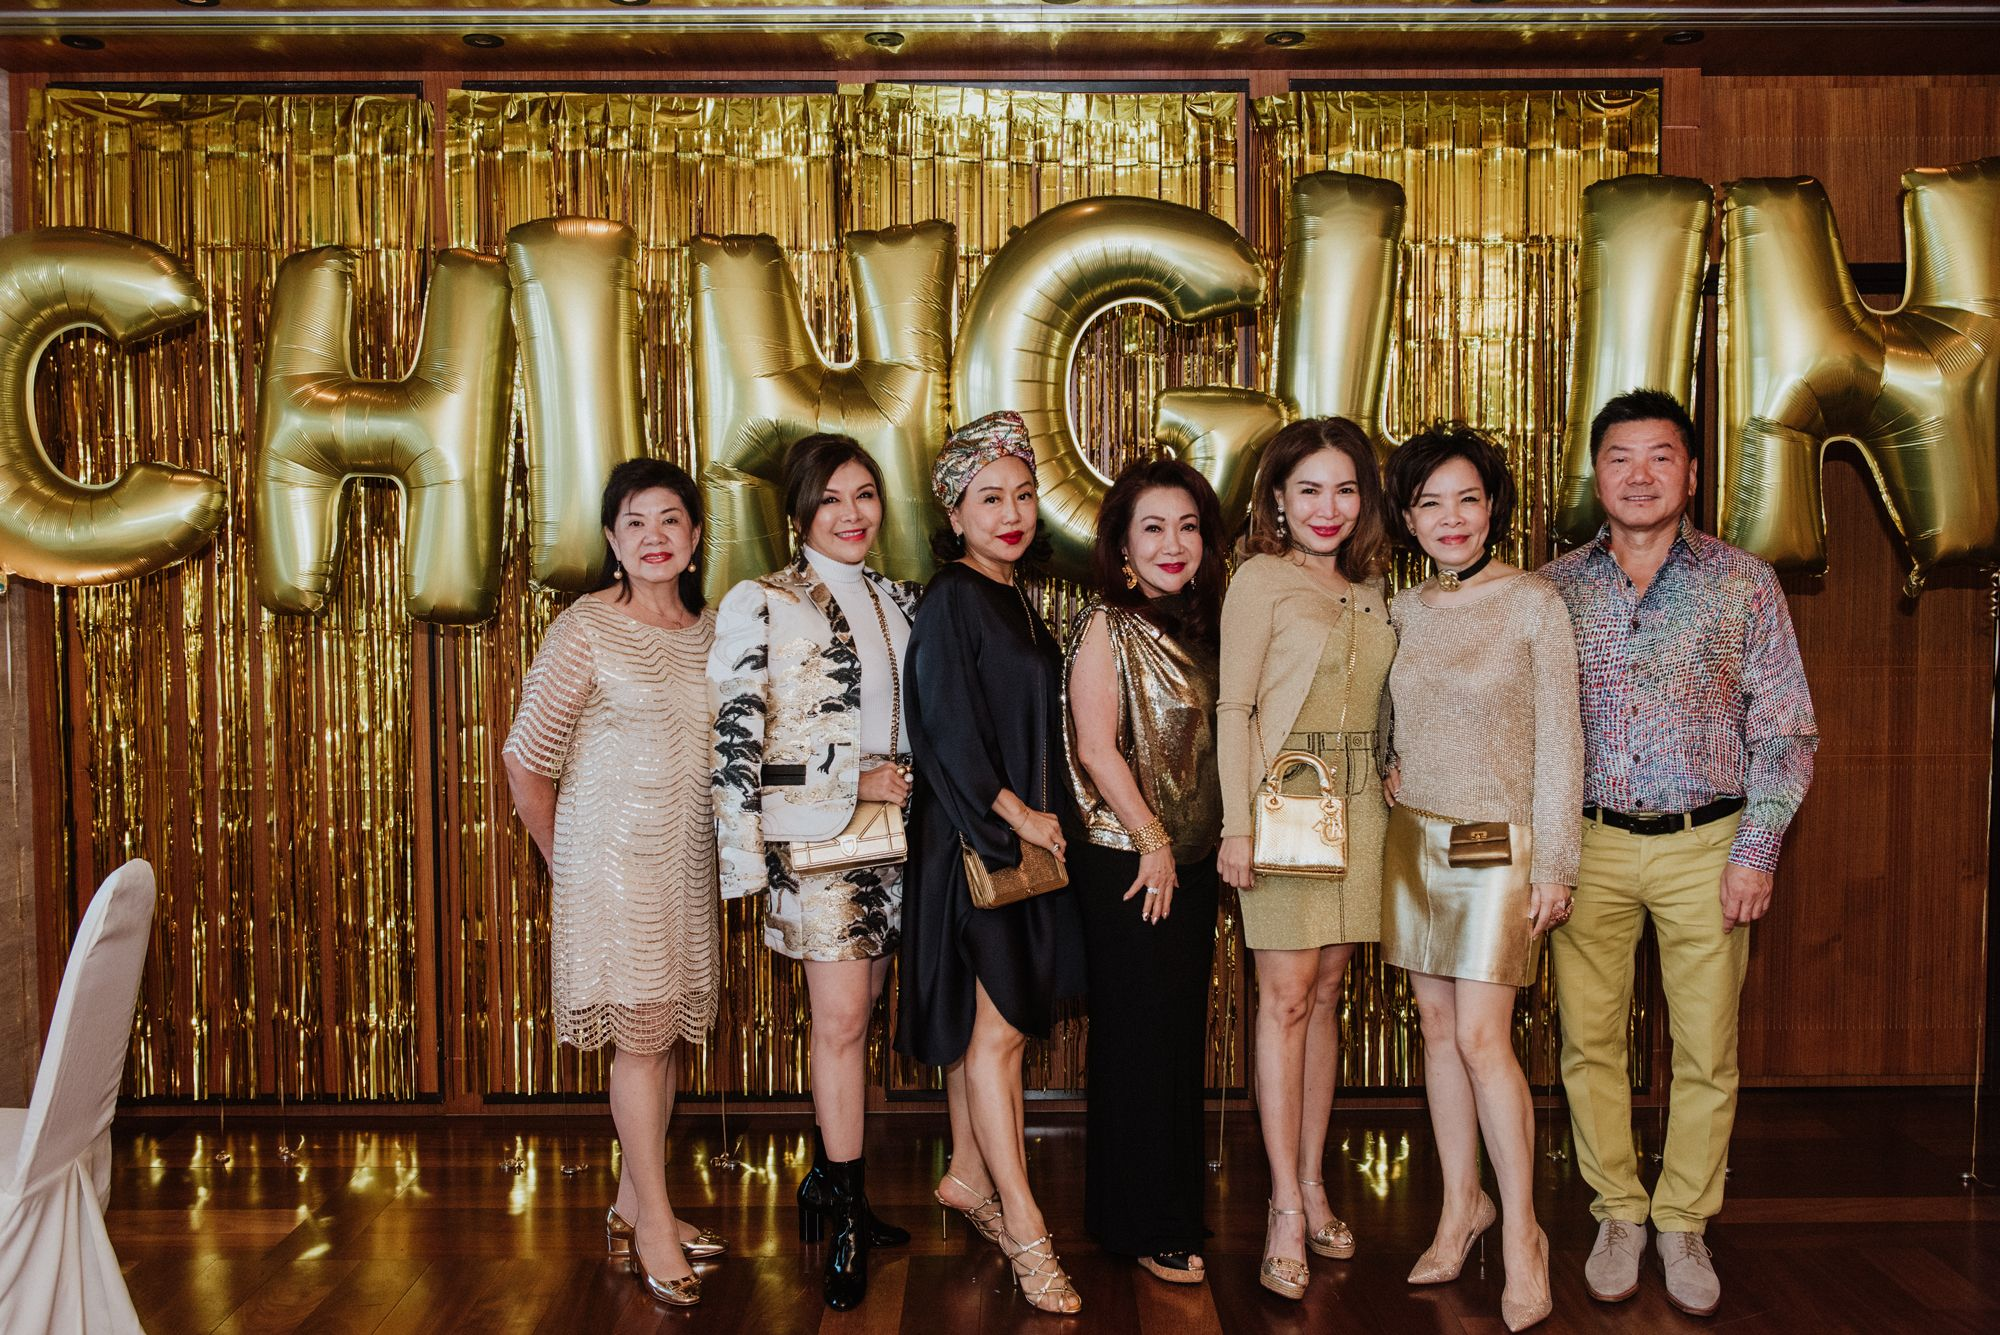 Judy Chia, Belinda Chua, Jane Soon, Lotus Soh, Jun Low, Grace Wong, Kevin Wong